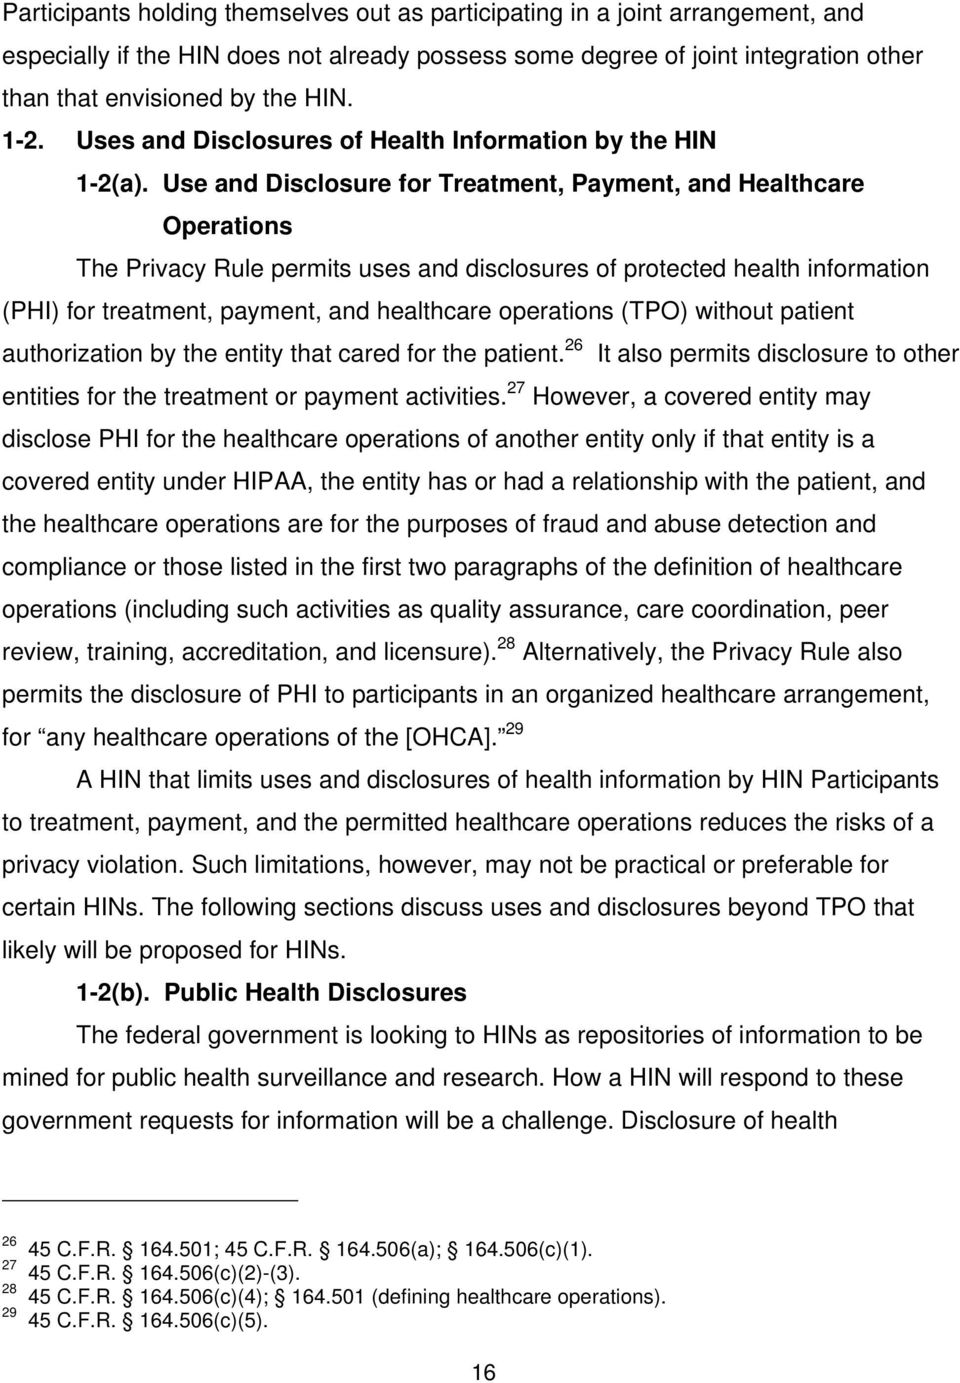 Use and Disclosure for Treatment, Payment, and Healthcare Operations The Privacy Rule permits uses and disclosures of protected health information (PHI) for treatment, payment, and healthcare